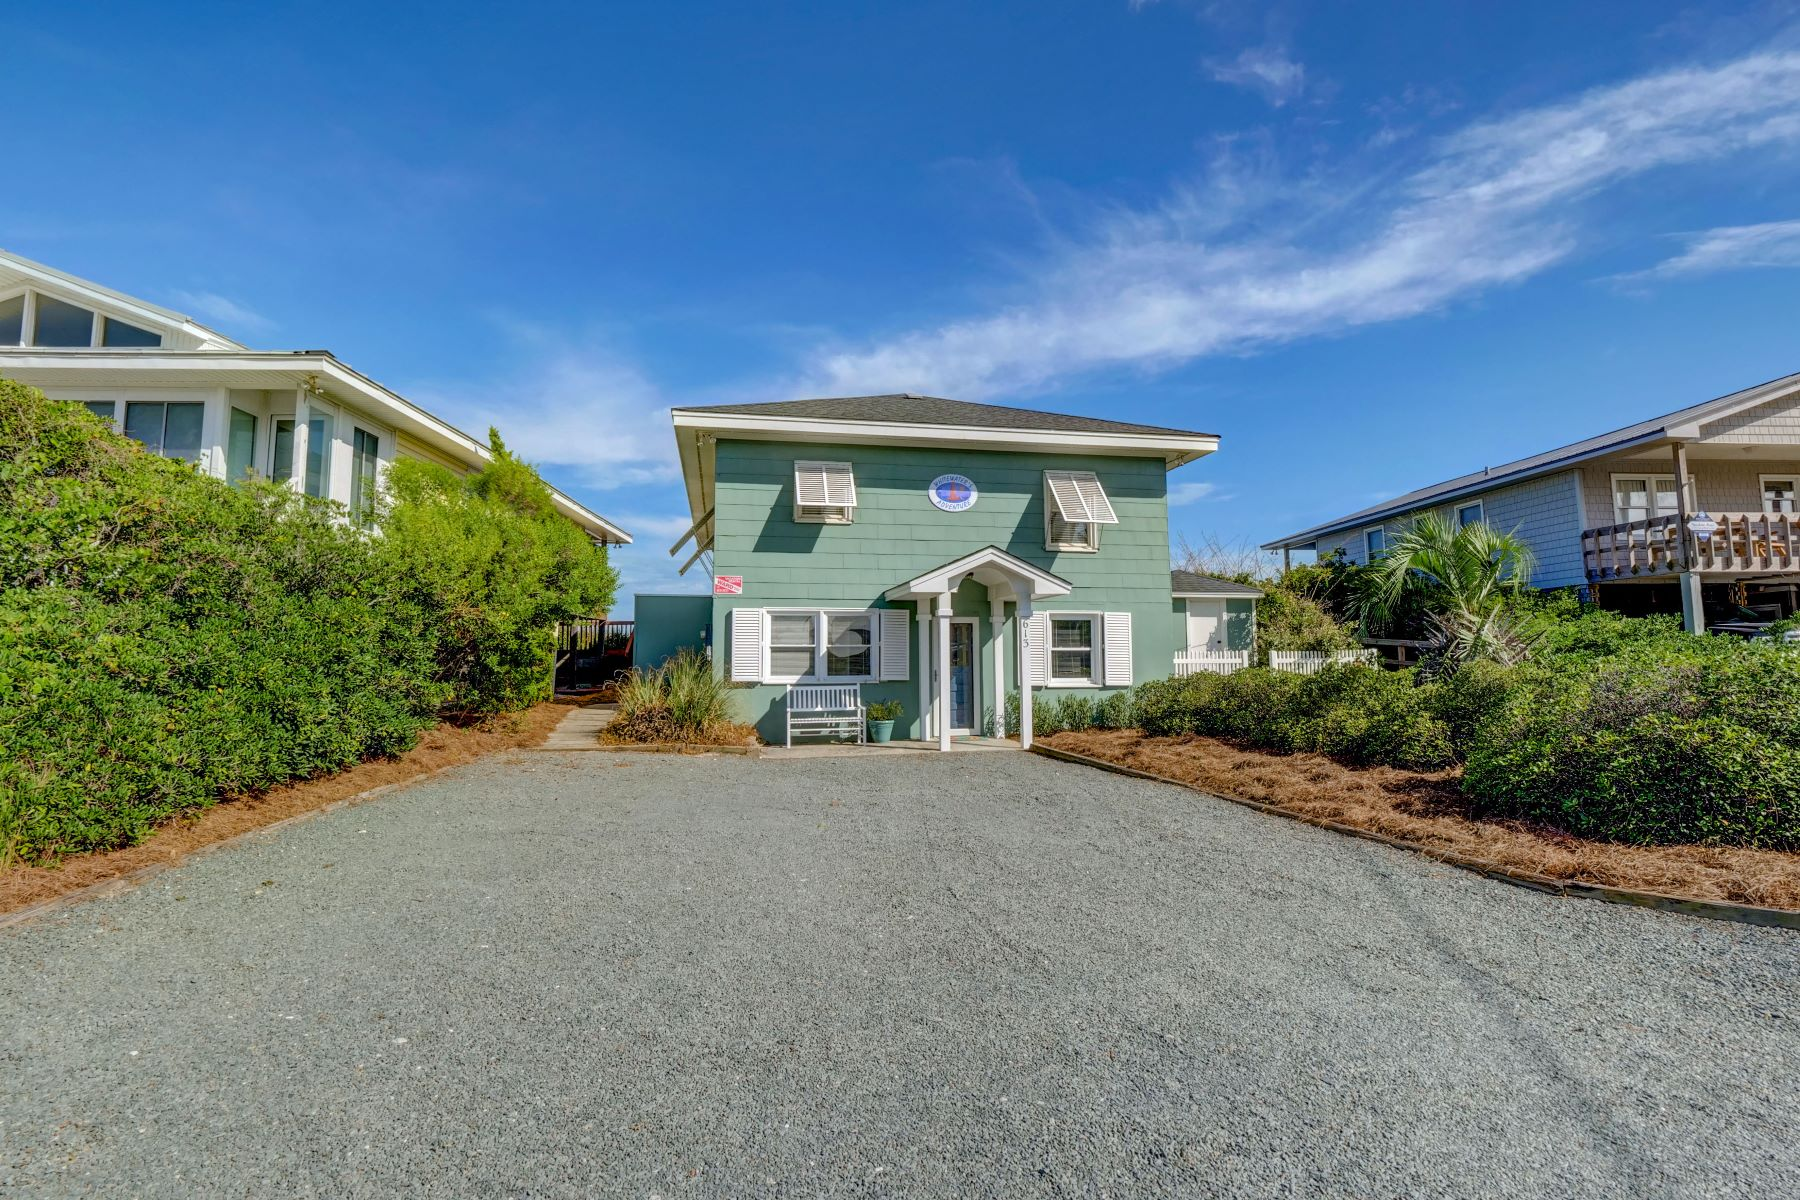 Single Family Homes for Sale at Unique Oceanfront Cottage with Sound Access 613 N Anderson Blvd Topsail Beach, North Carolina 28445 United States